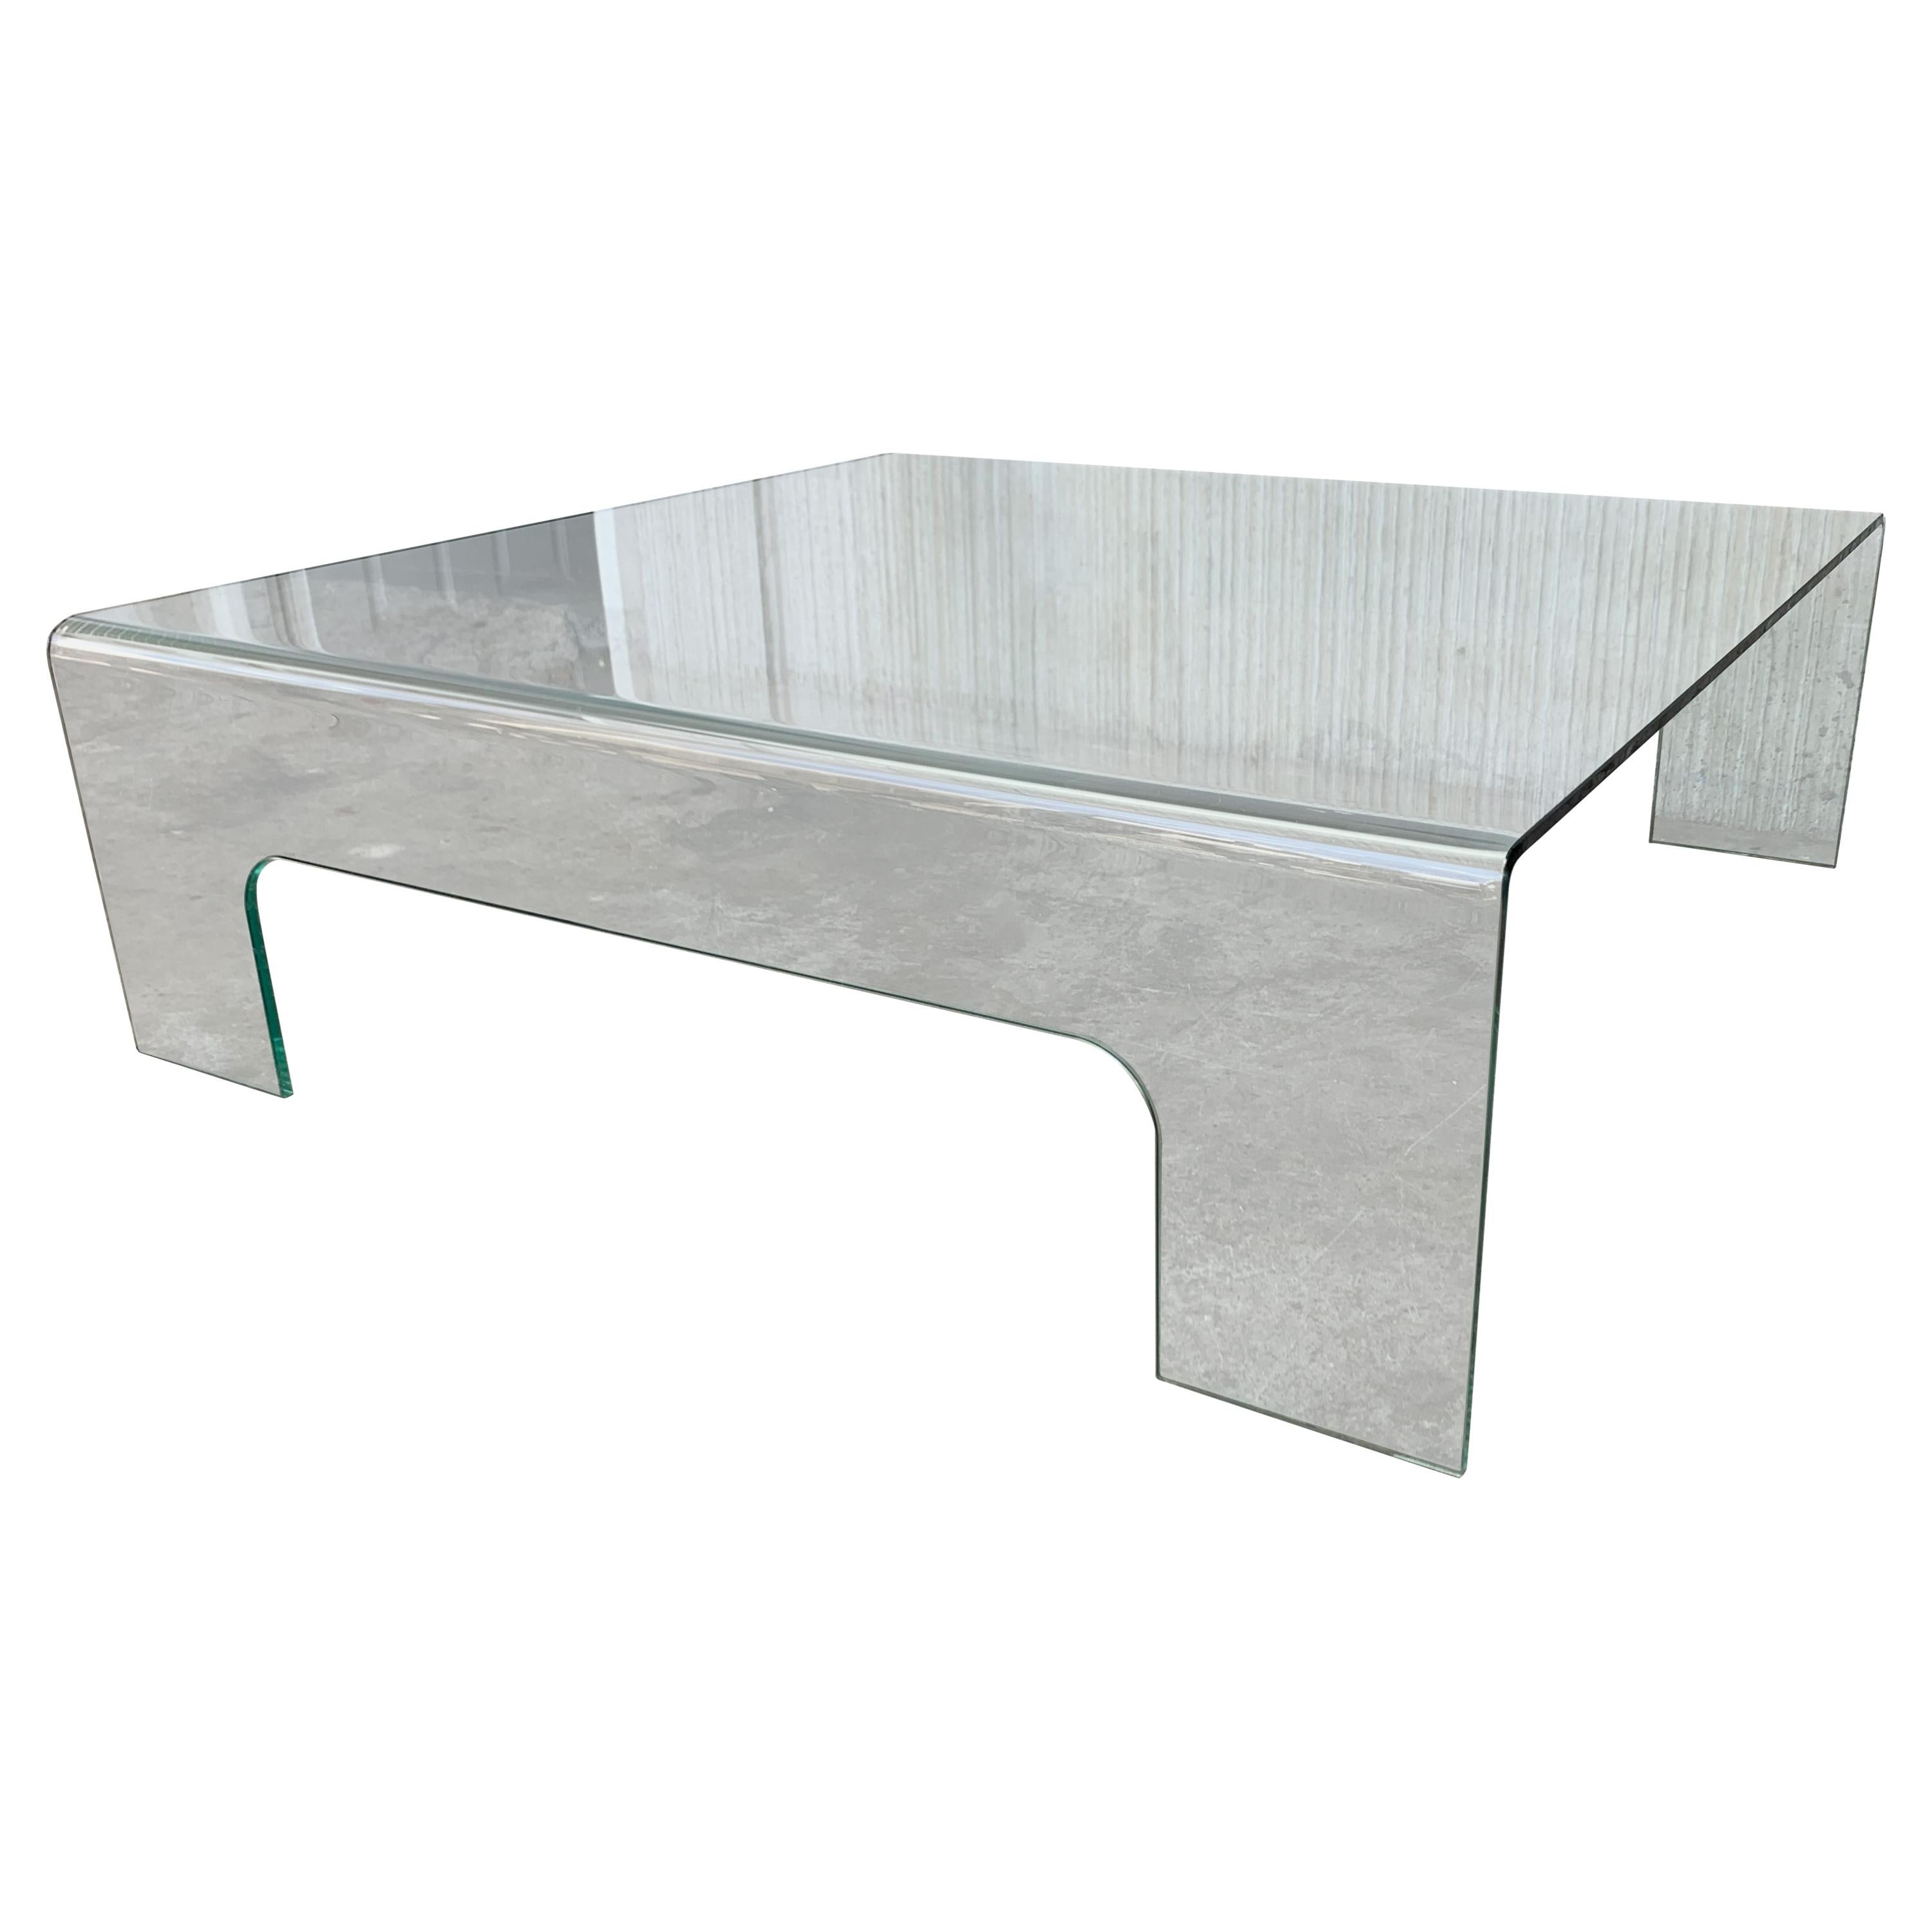 20th Century Mid-Century Modern Square Curved Glass Coffee Table